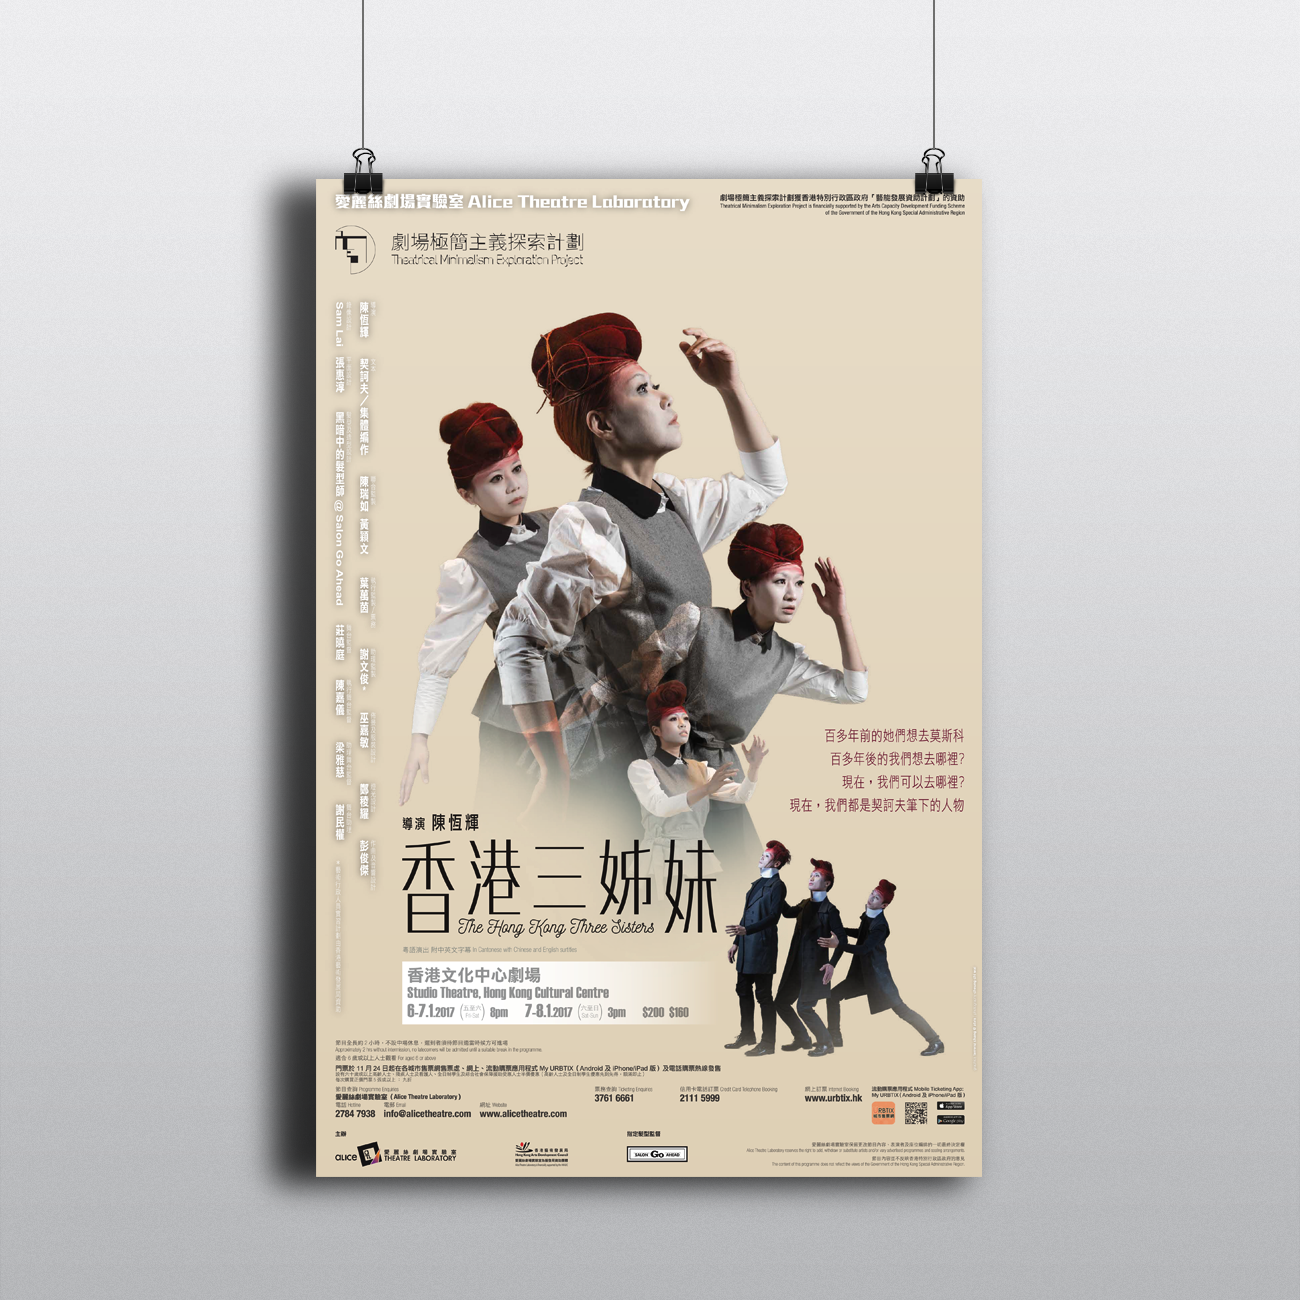 Alice Theatre Laboratory's The Hong Kong Three Sisters